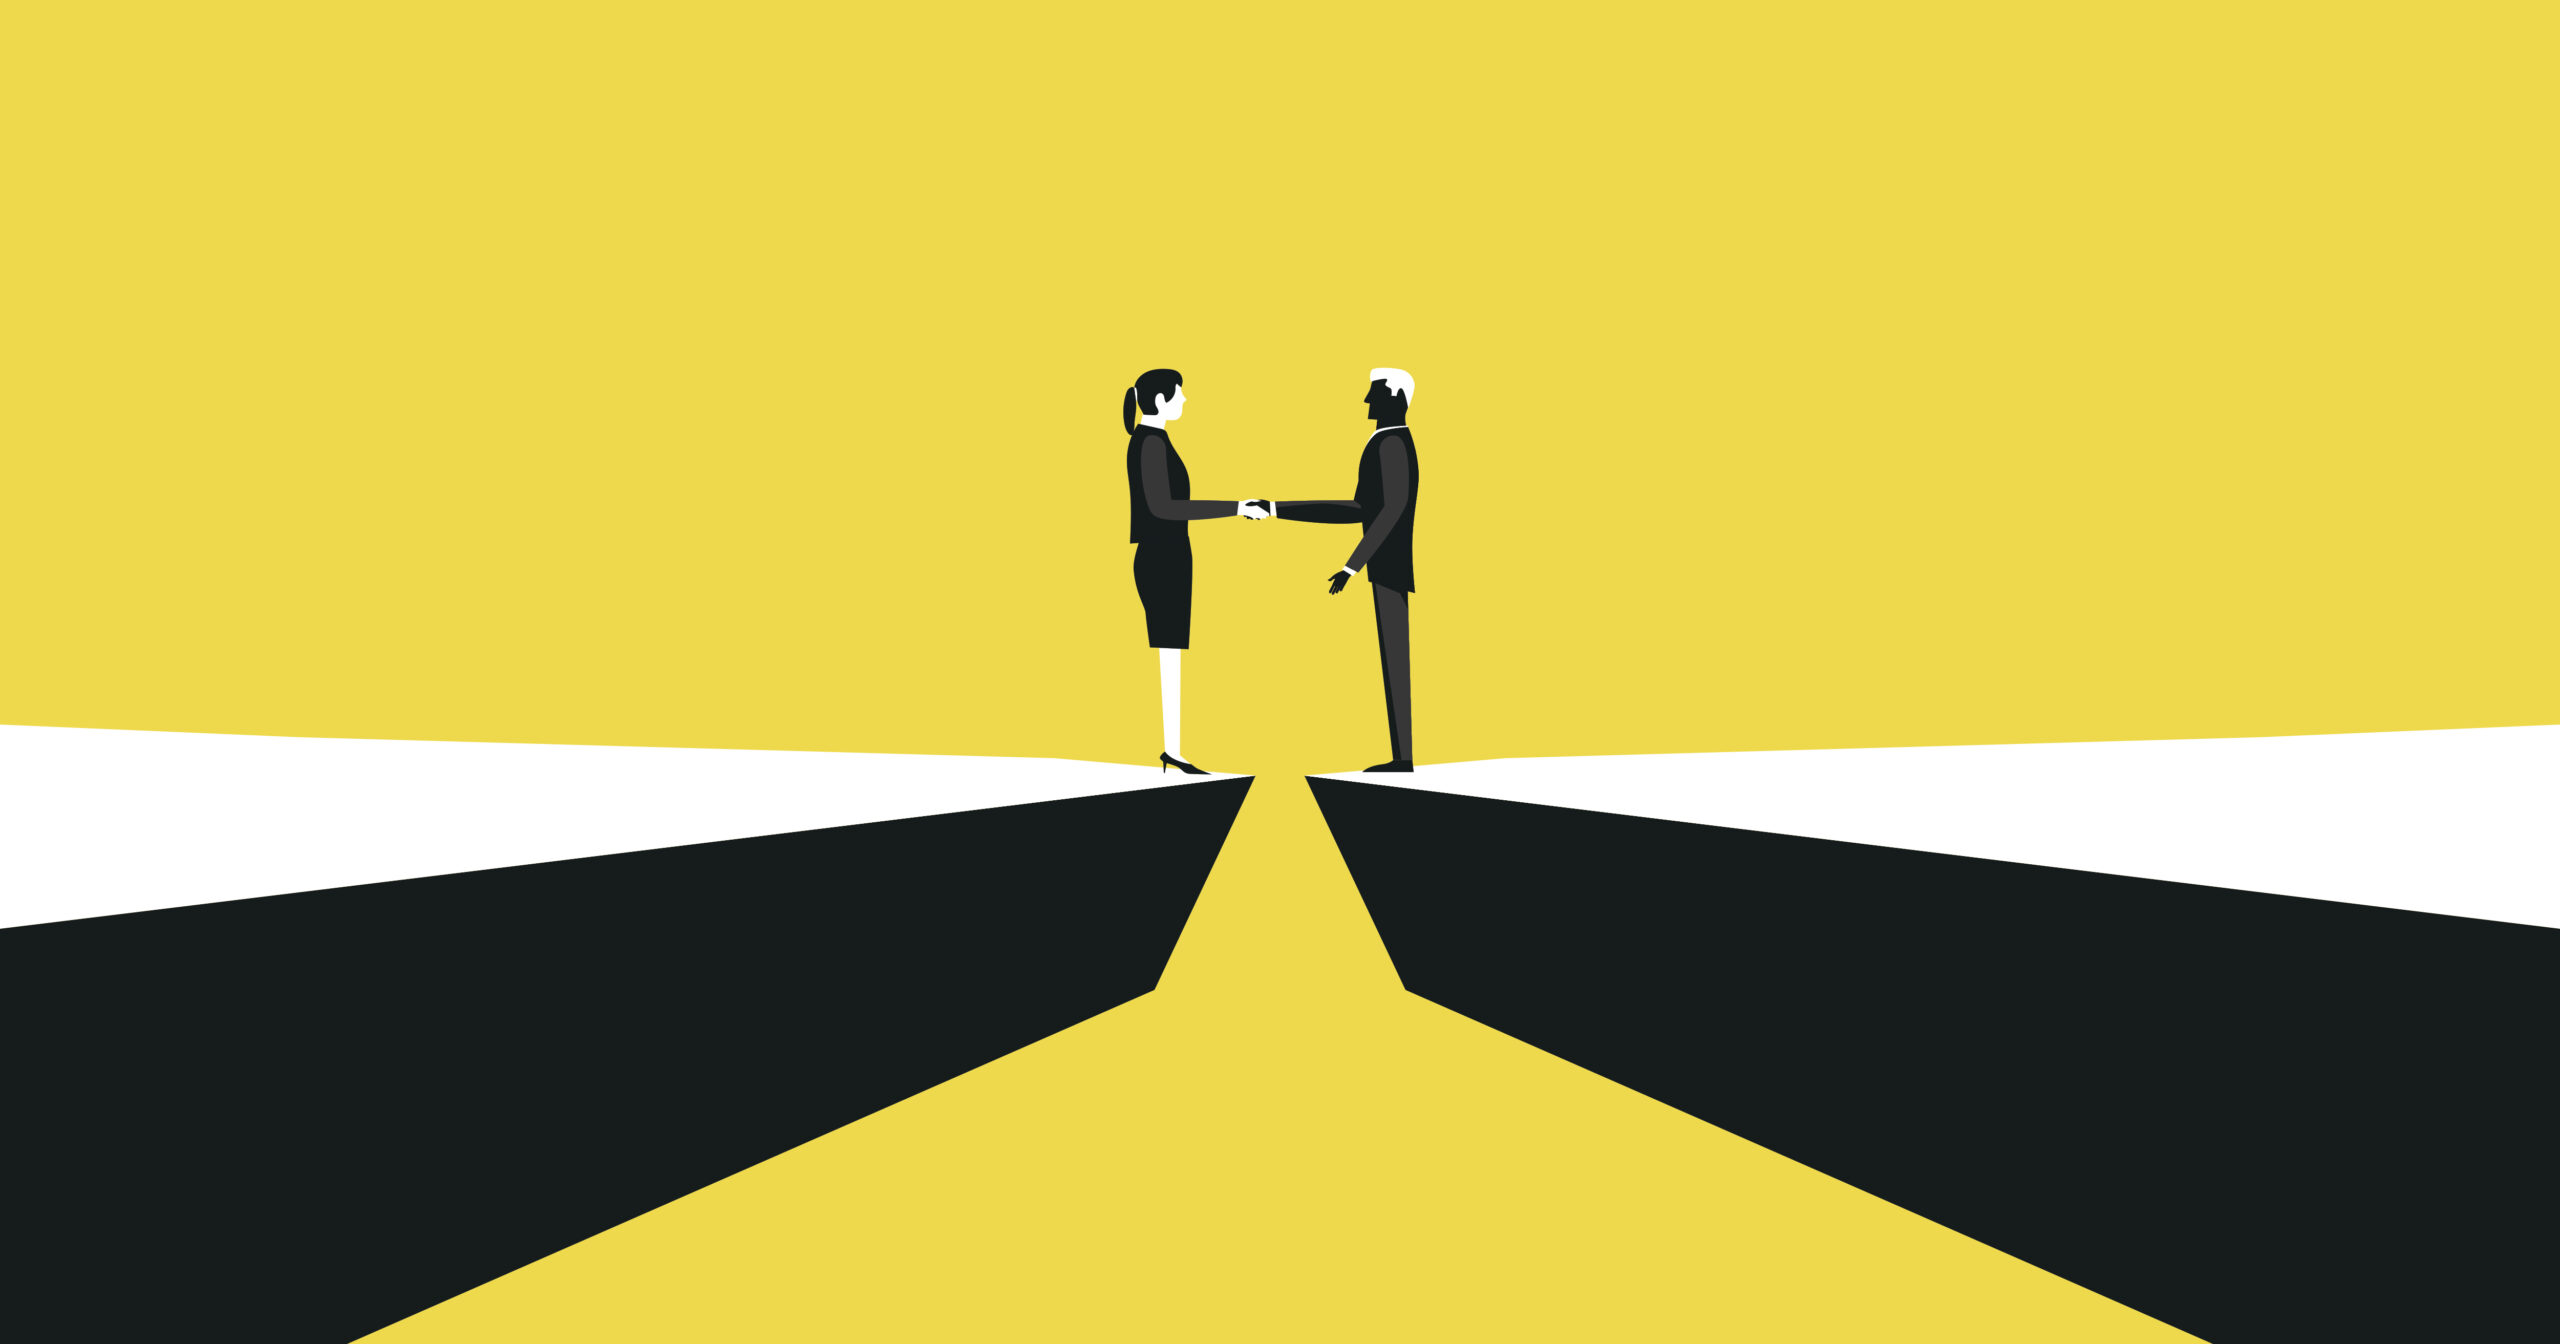 Illustration of two people shaking hands across a divide